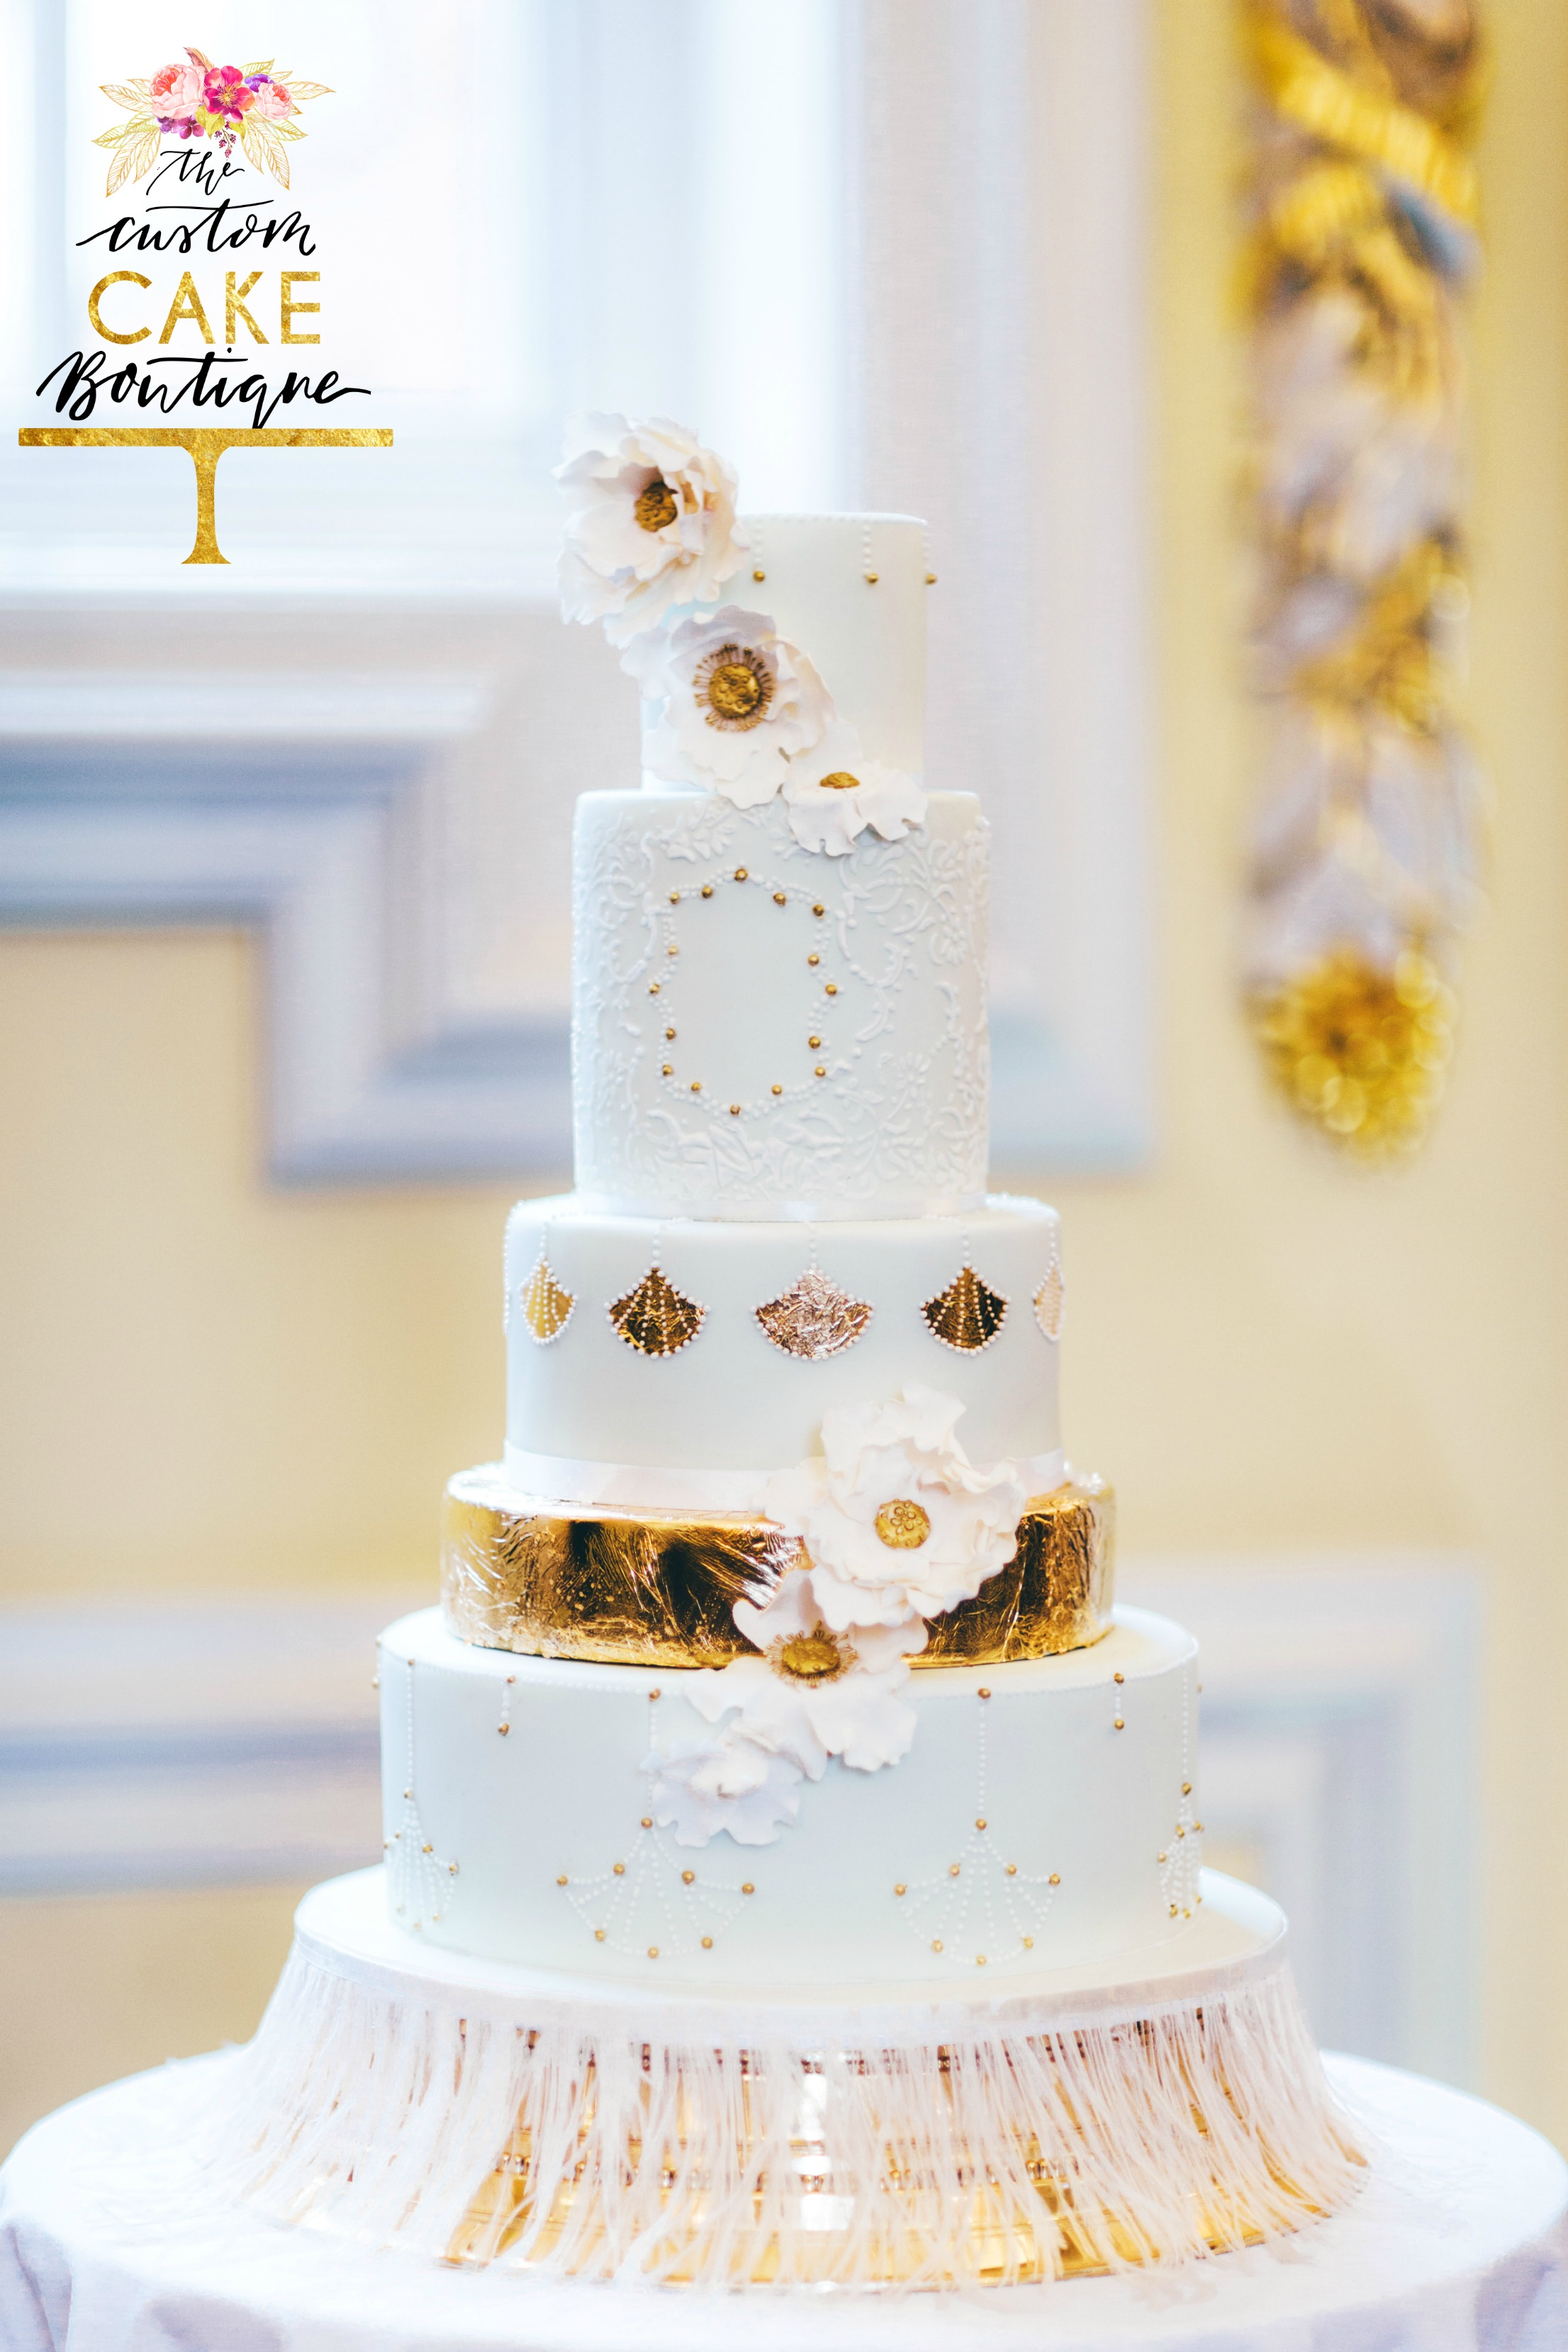 Delighted Wedding Cake Designs Small Amazing Wedding Cakes Shaped Wedding Cake Toppers Rustic Wood Wedding Cake Old Wedding Cake Pool Stairs SoftCountry Wedding Cake Toppers Deciding The Size Of Your Wedding Cake | The Custom Cake Boutique ..